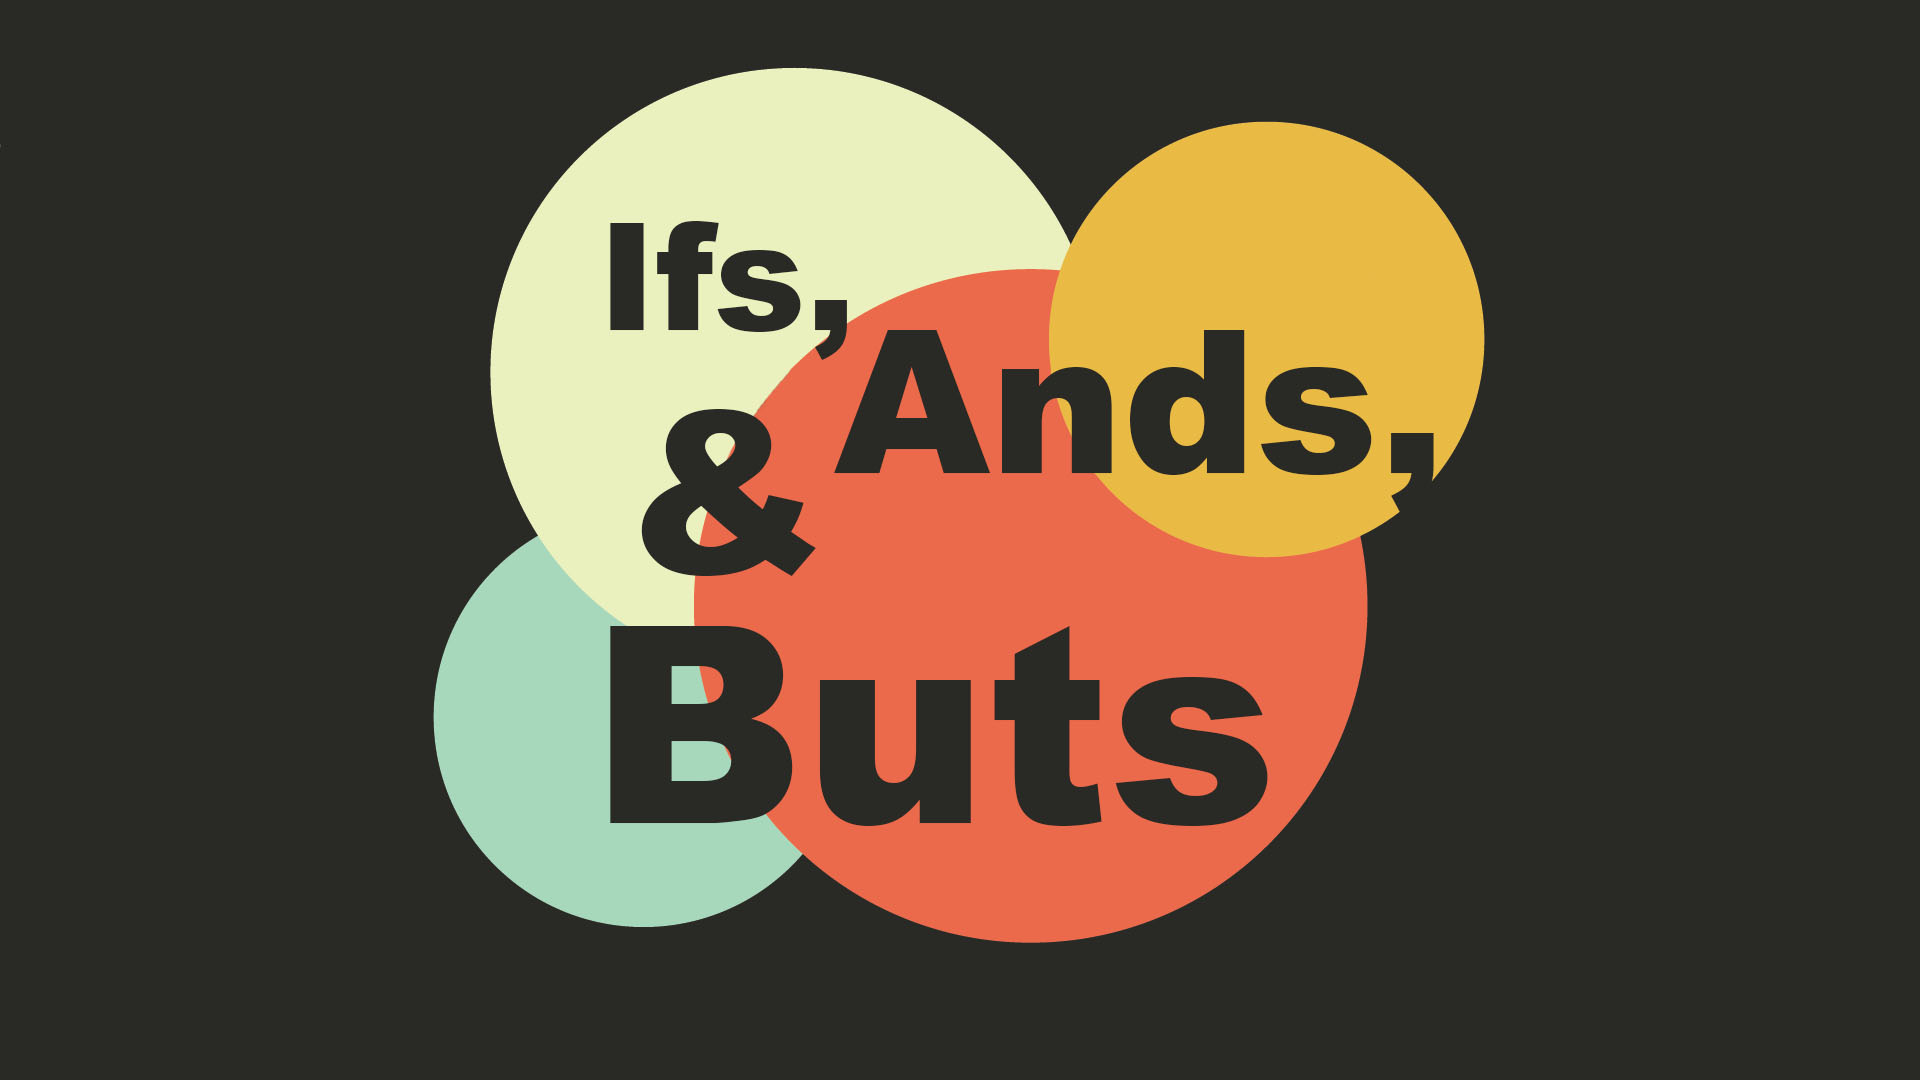 Ifs, Ands, & Buts